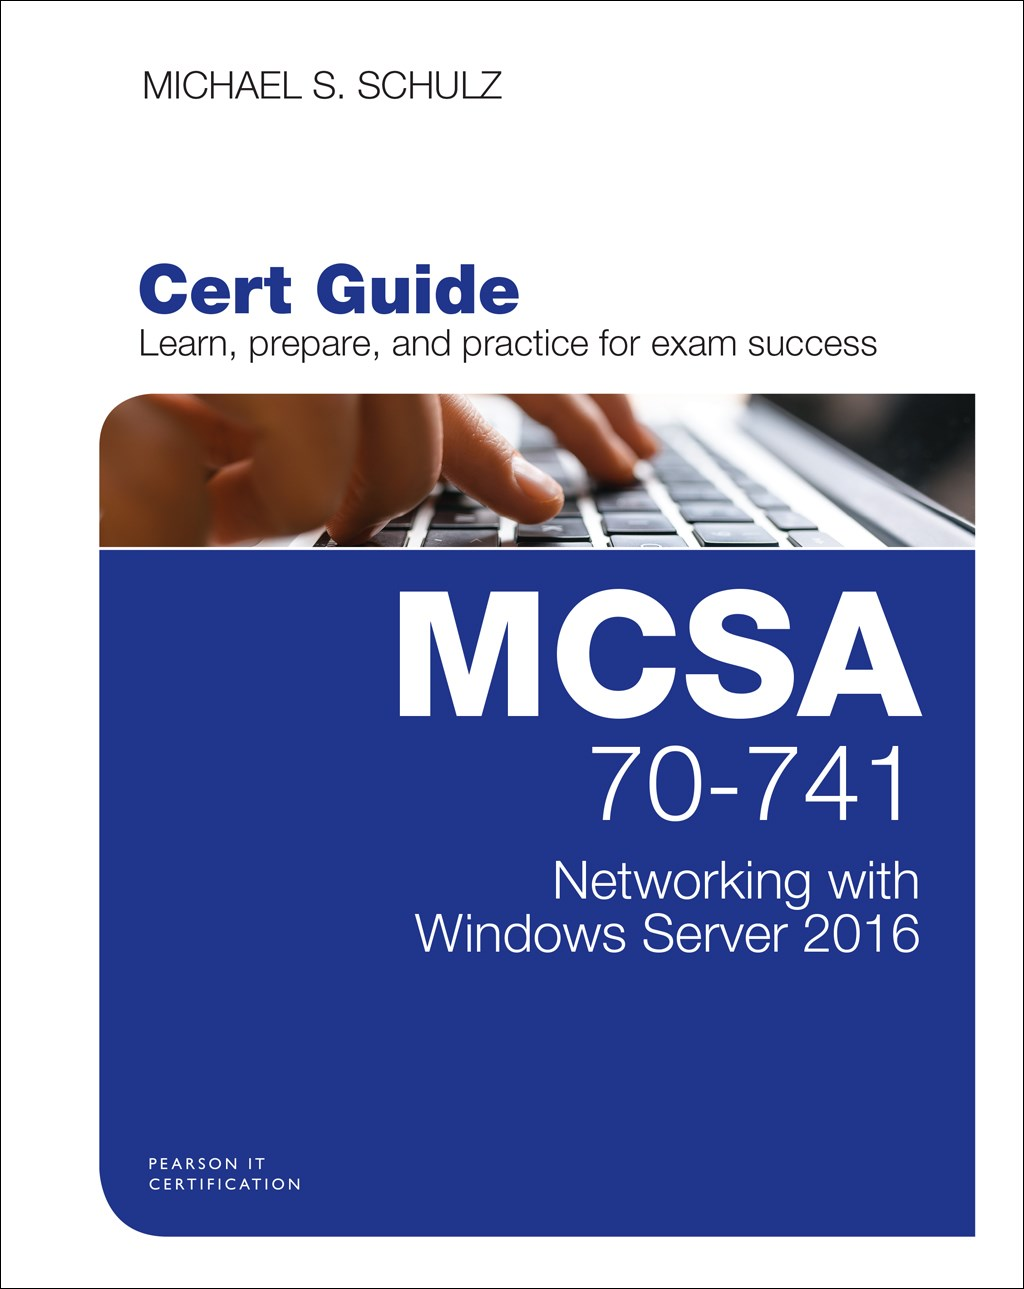 MCSA 70-741 Cert Guide: Networking with Windows Server 2016, Rough Cuts